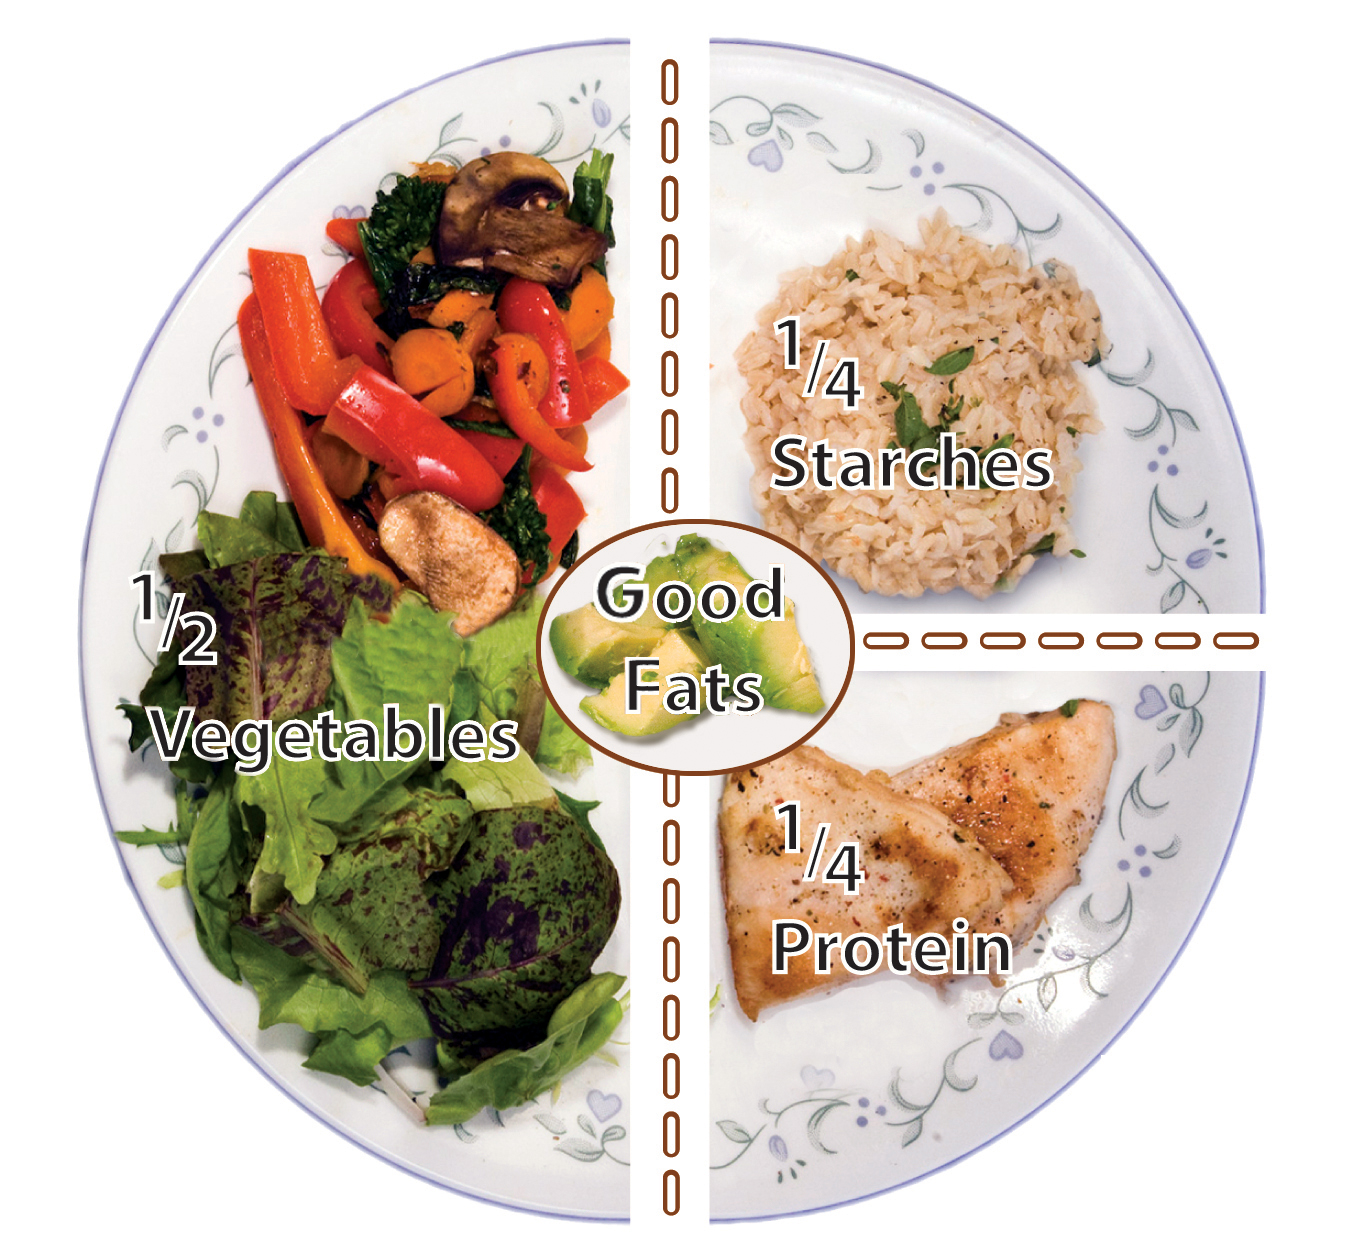 Portion Size Guide - My Food and Family